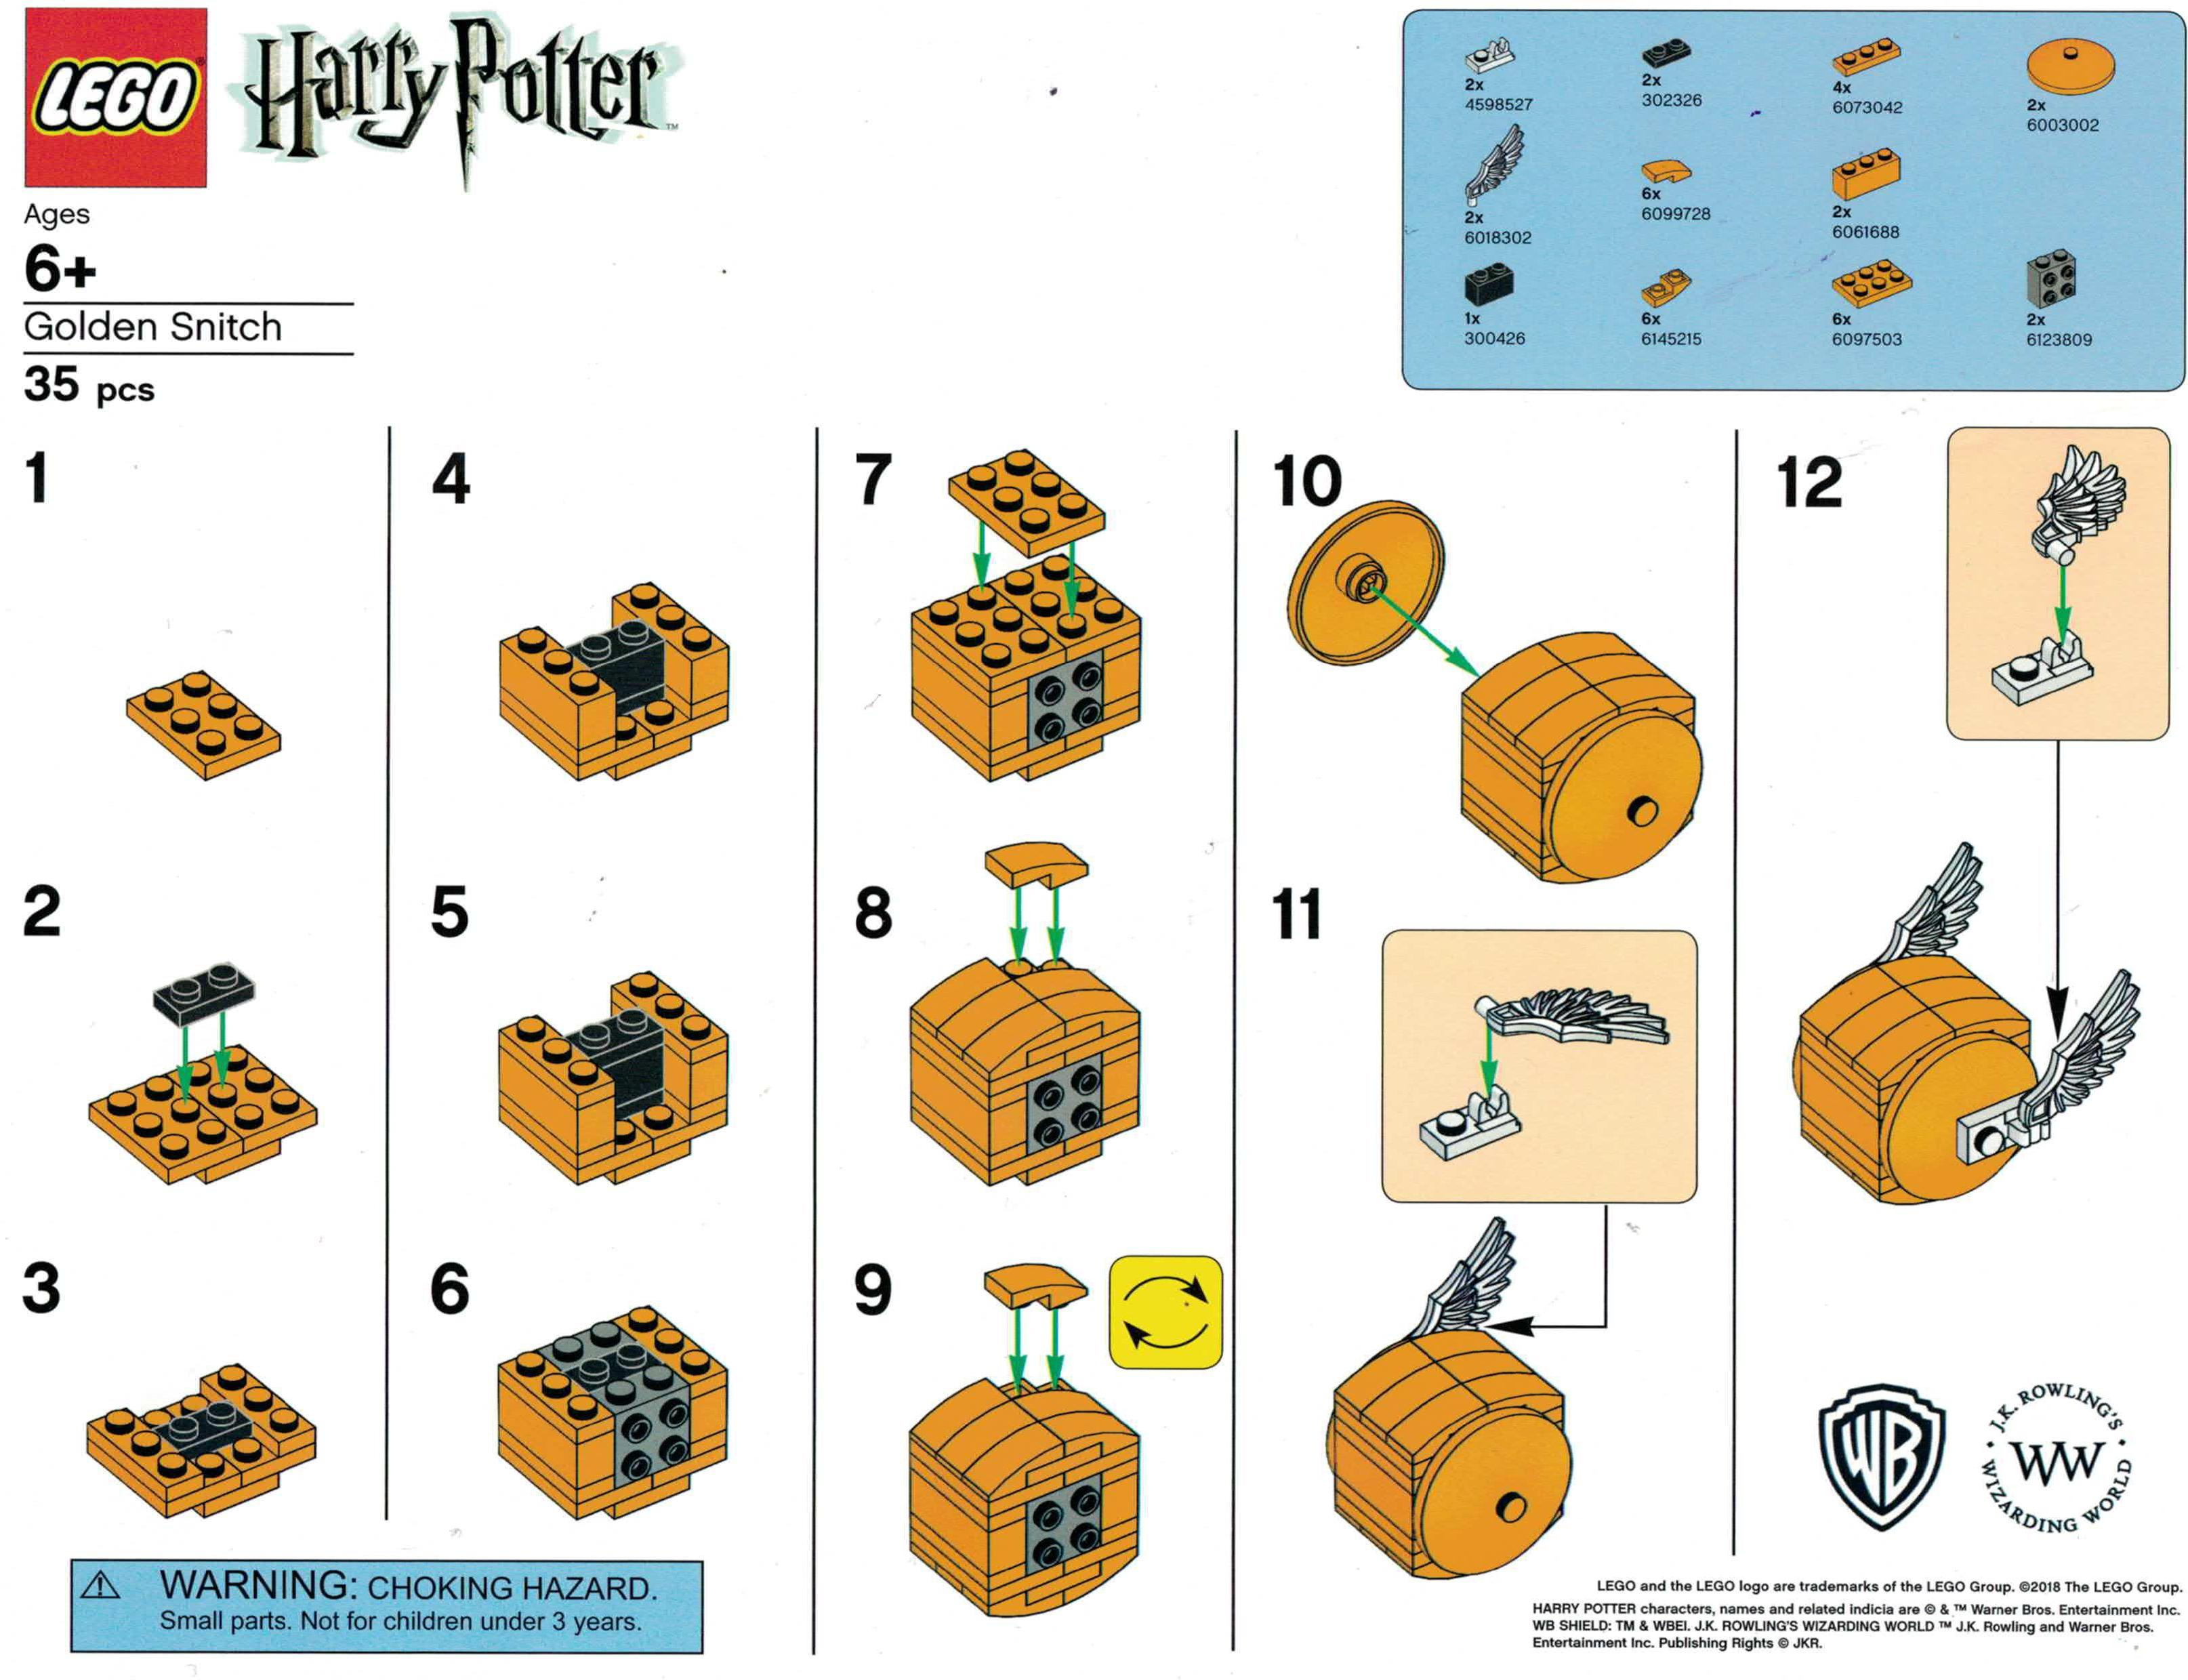 LEGO Harry Potter Golden Snitch Building Instructions - The